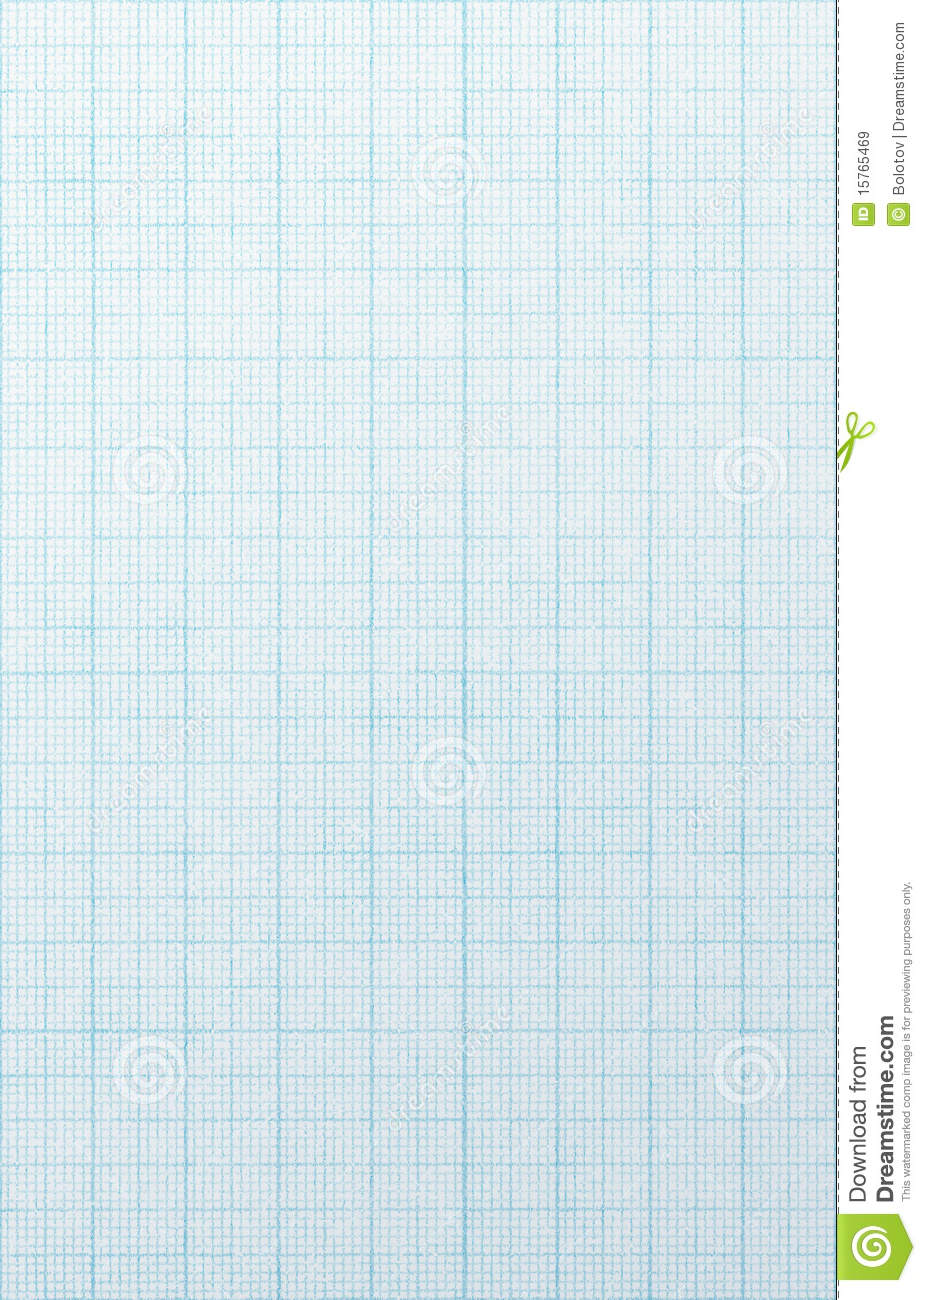 blue grid scale paper  royalty free stock images